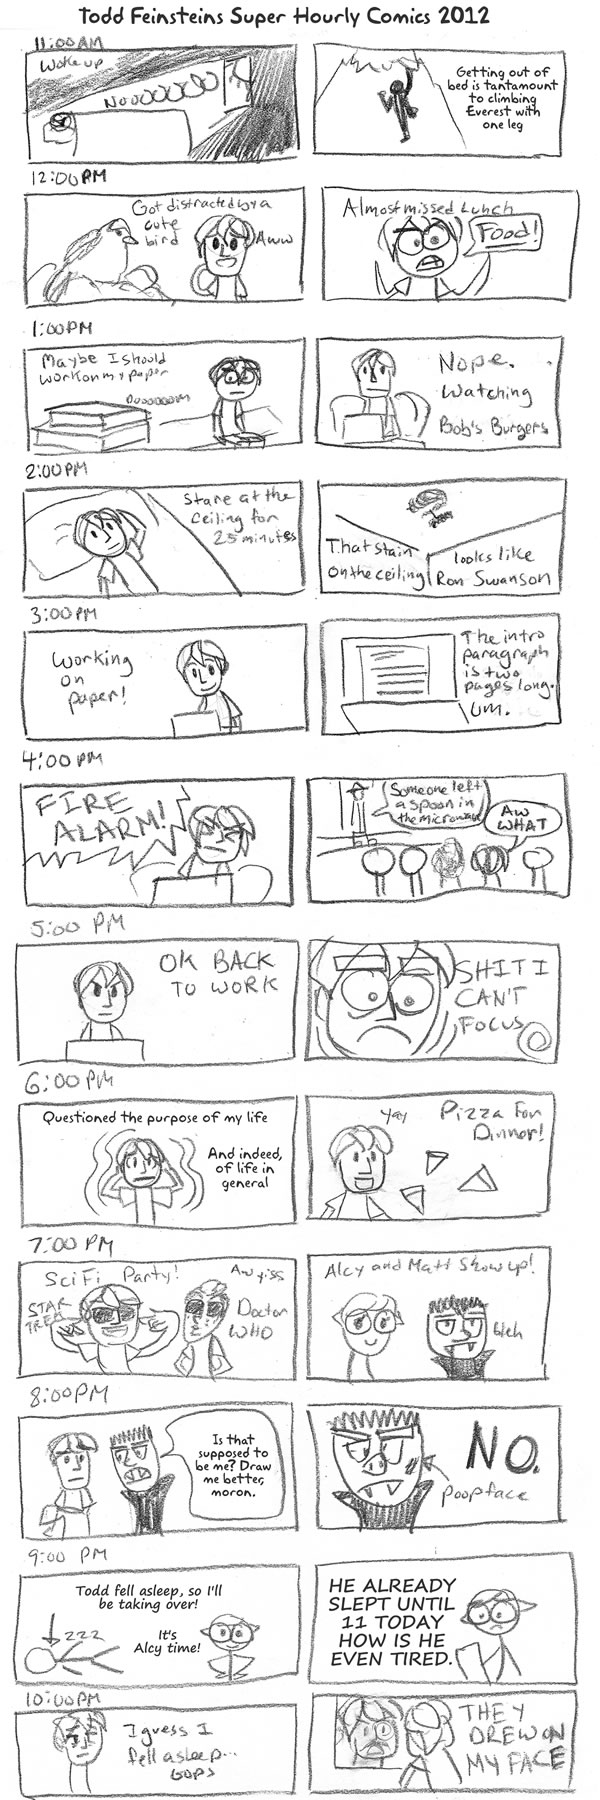 Todd Feinsteins Totally Excellent Hourly Comics 2012 Great Job